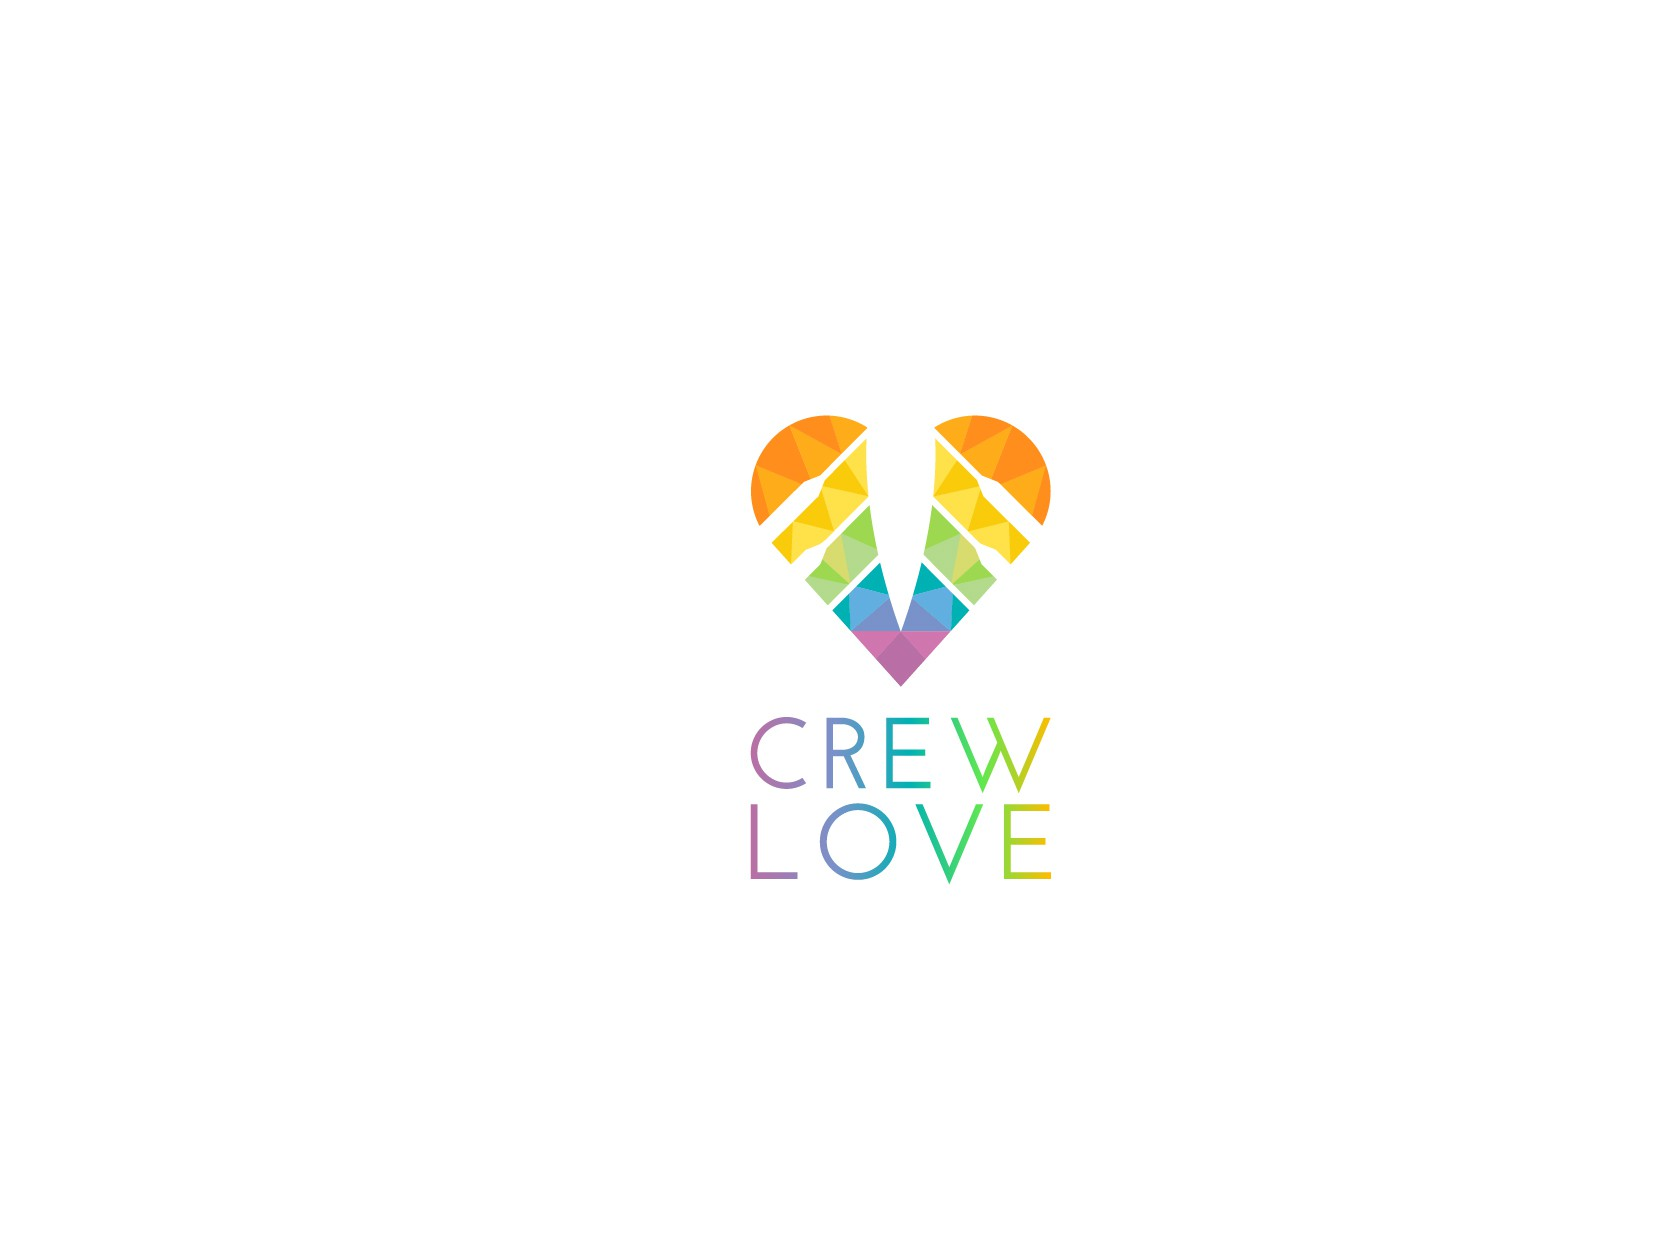 Create a modern and vibrant design for crew love!